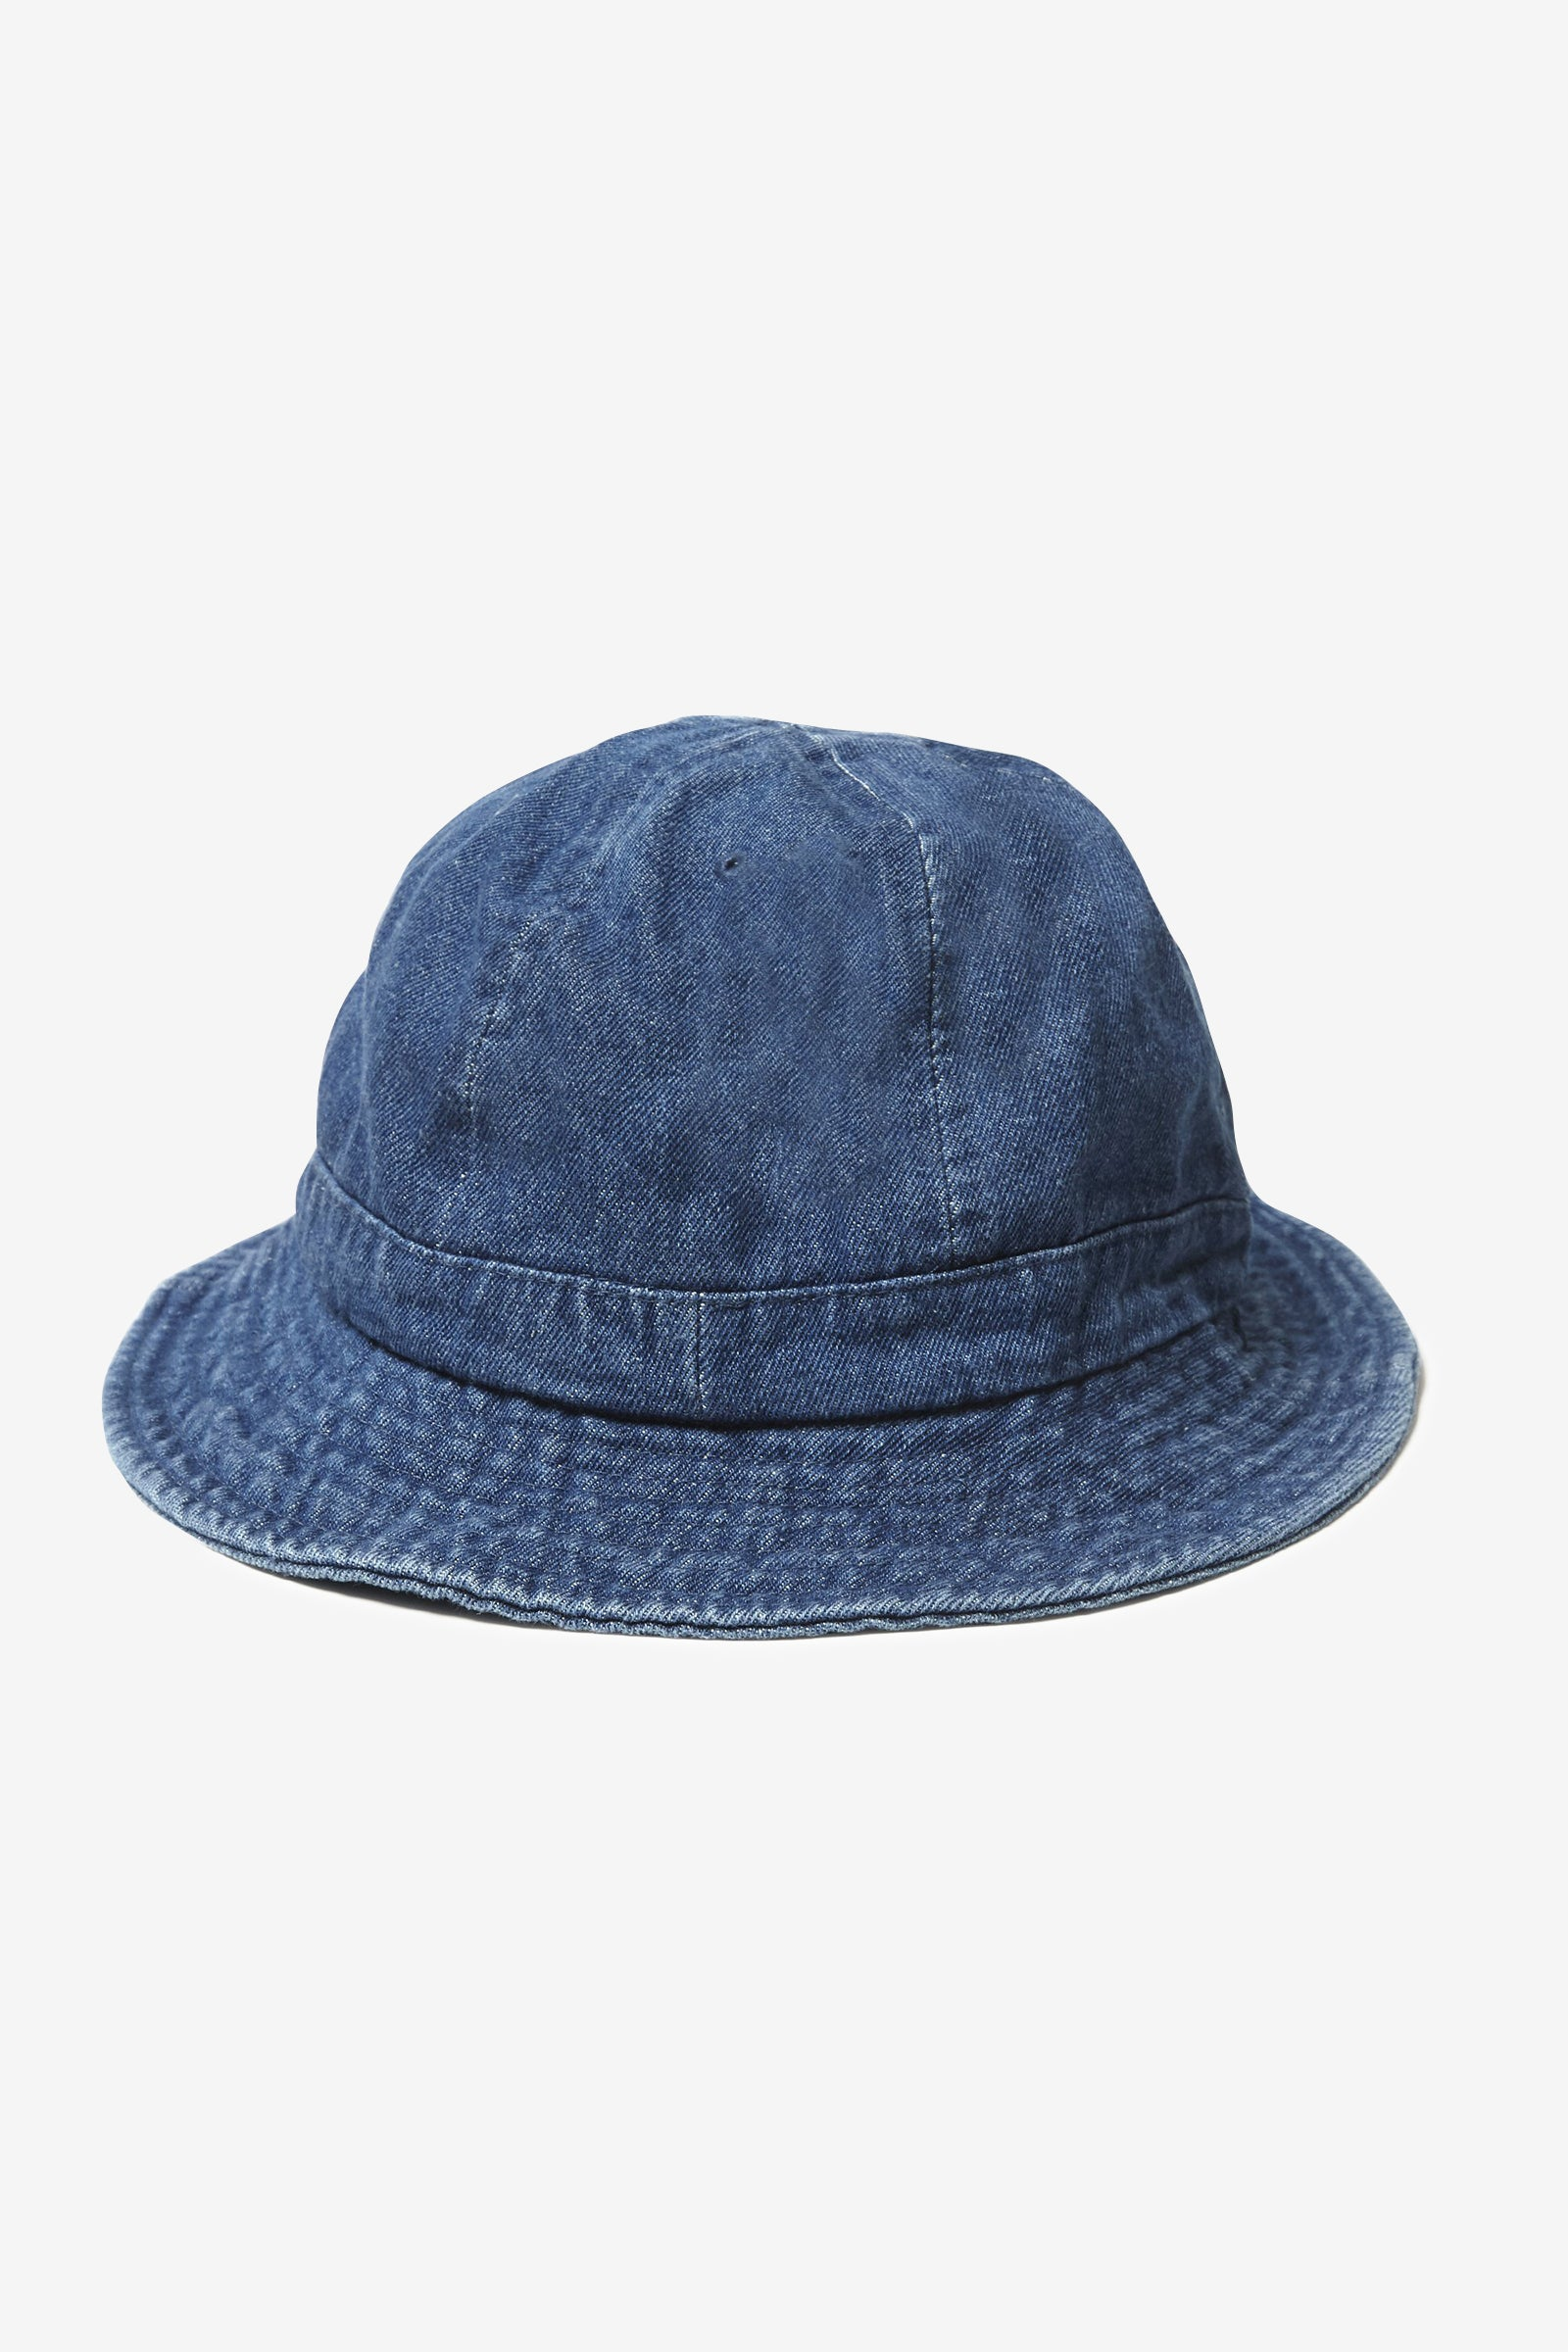 Blacksmith - Denim Bell Bucket Hat - Indigo